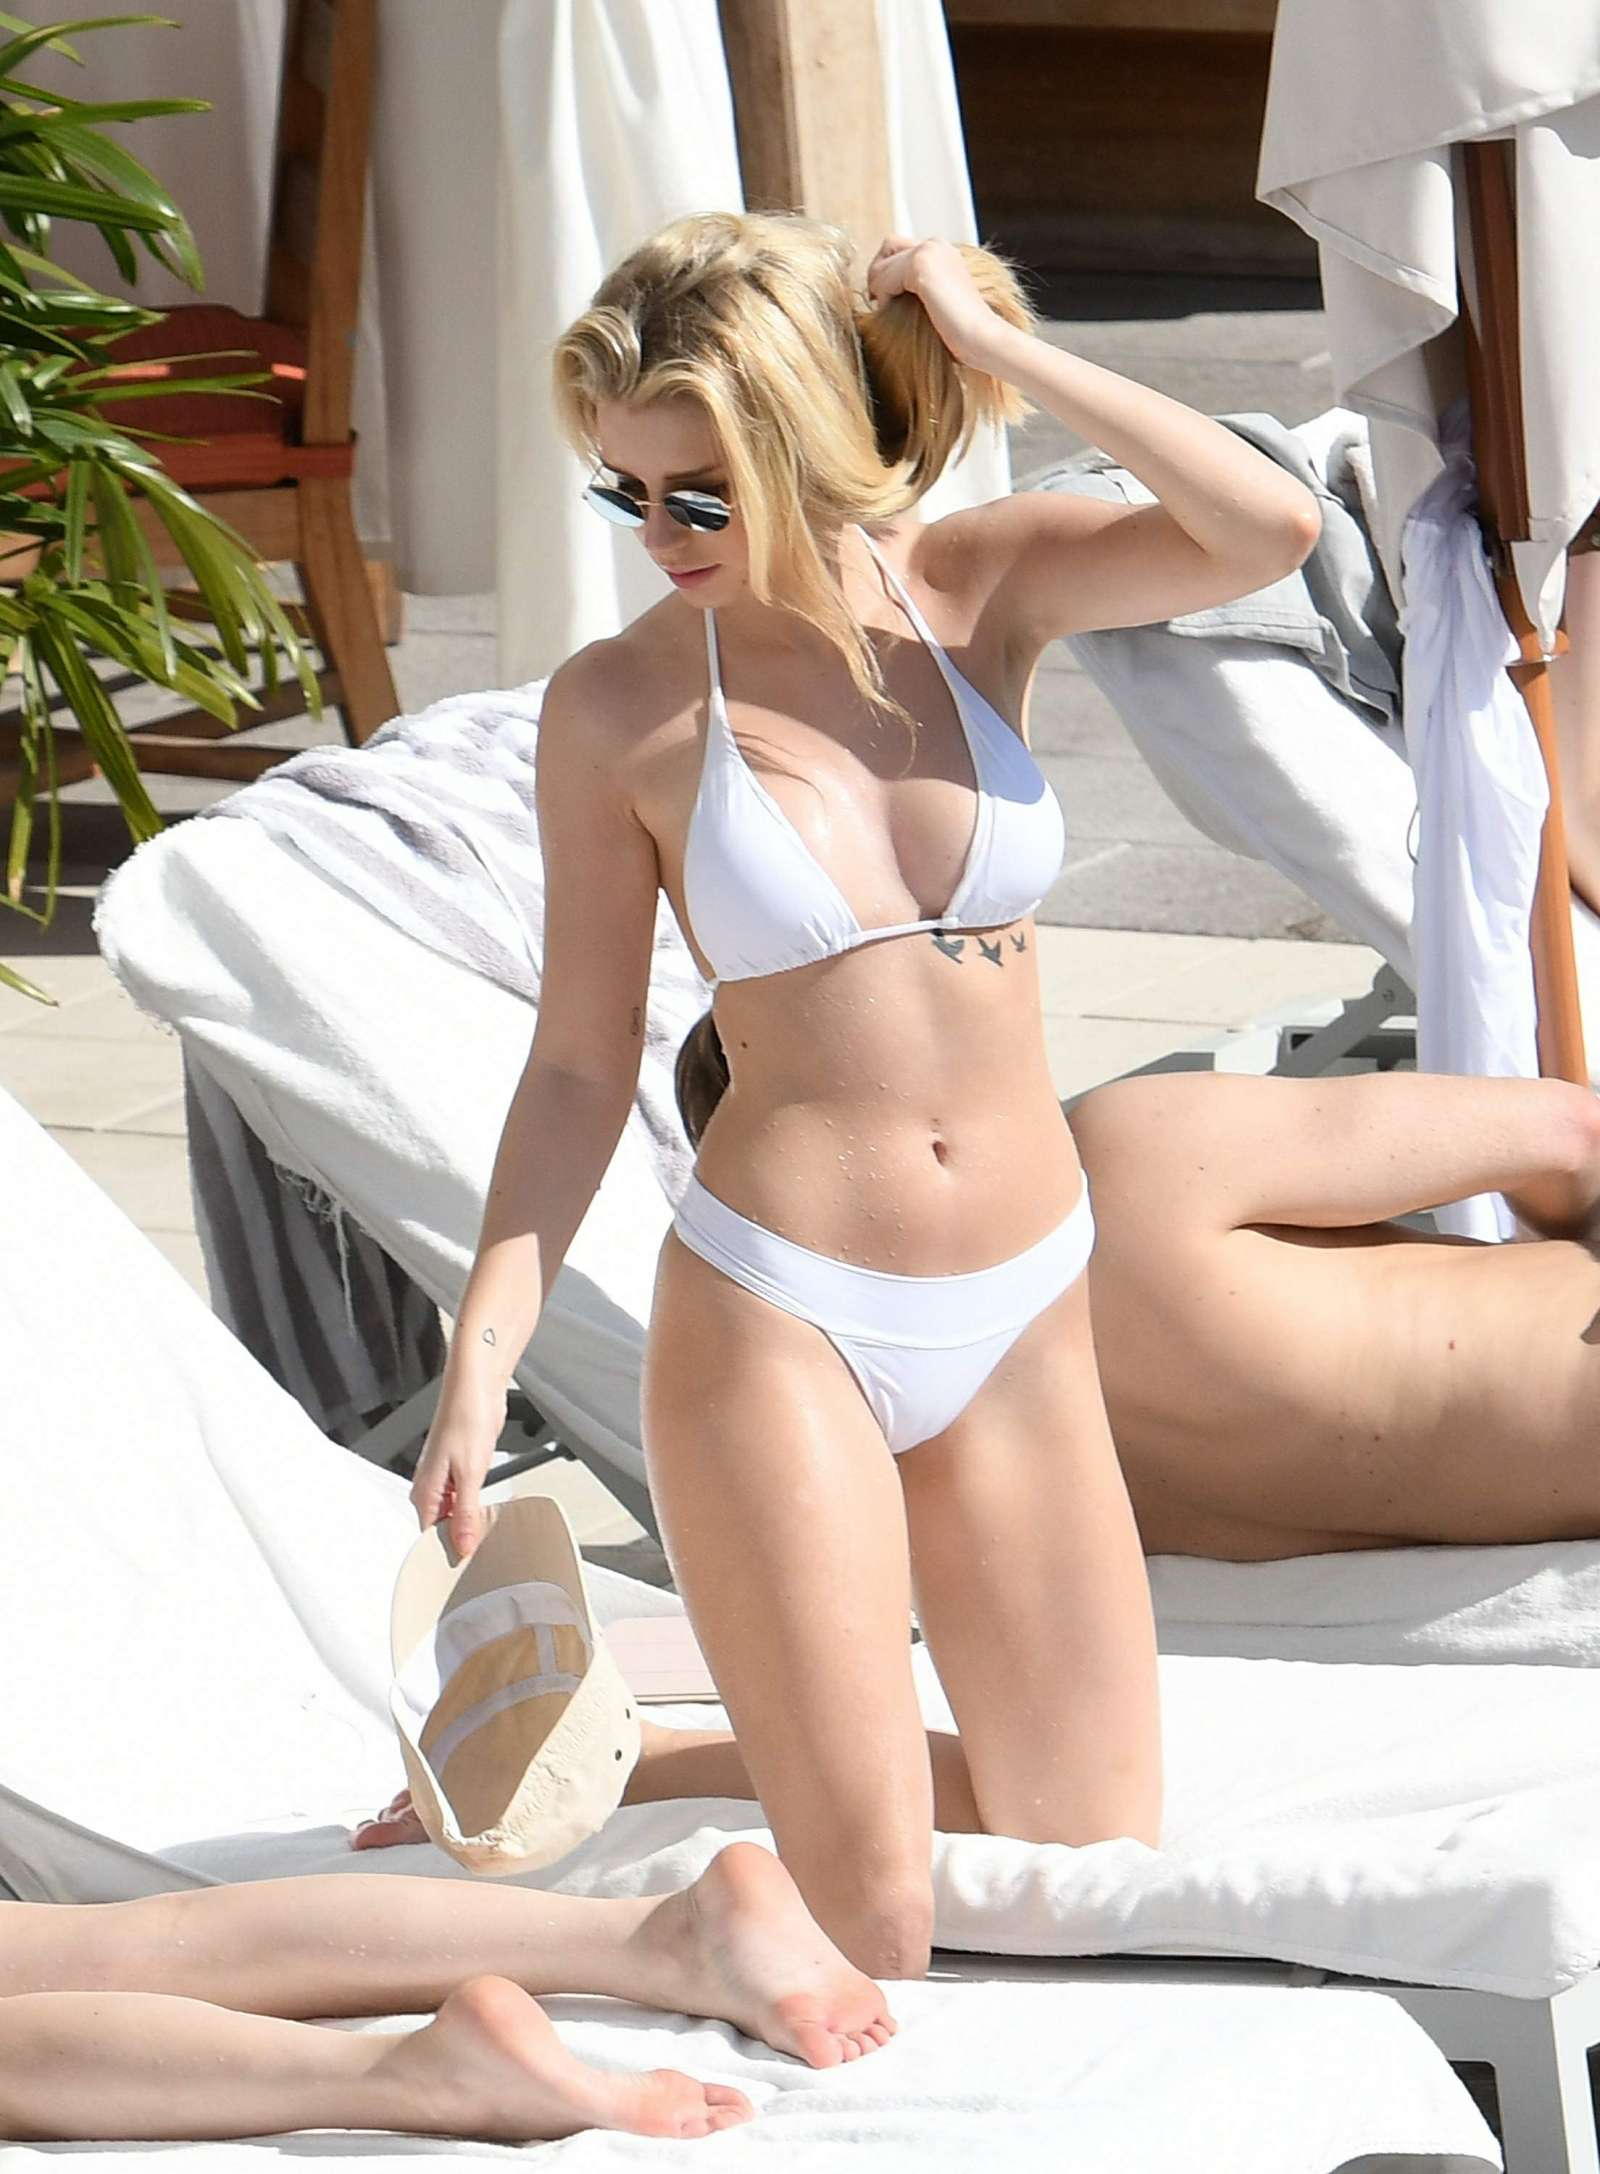 Lottie Moss in White Bikini on Holiday in Miami Pic 9 of 35